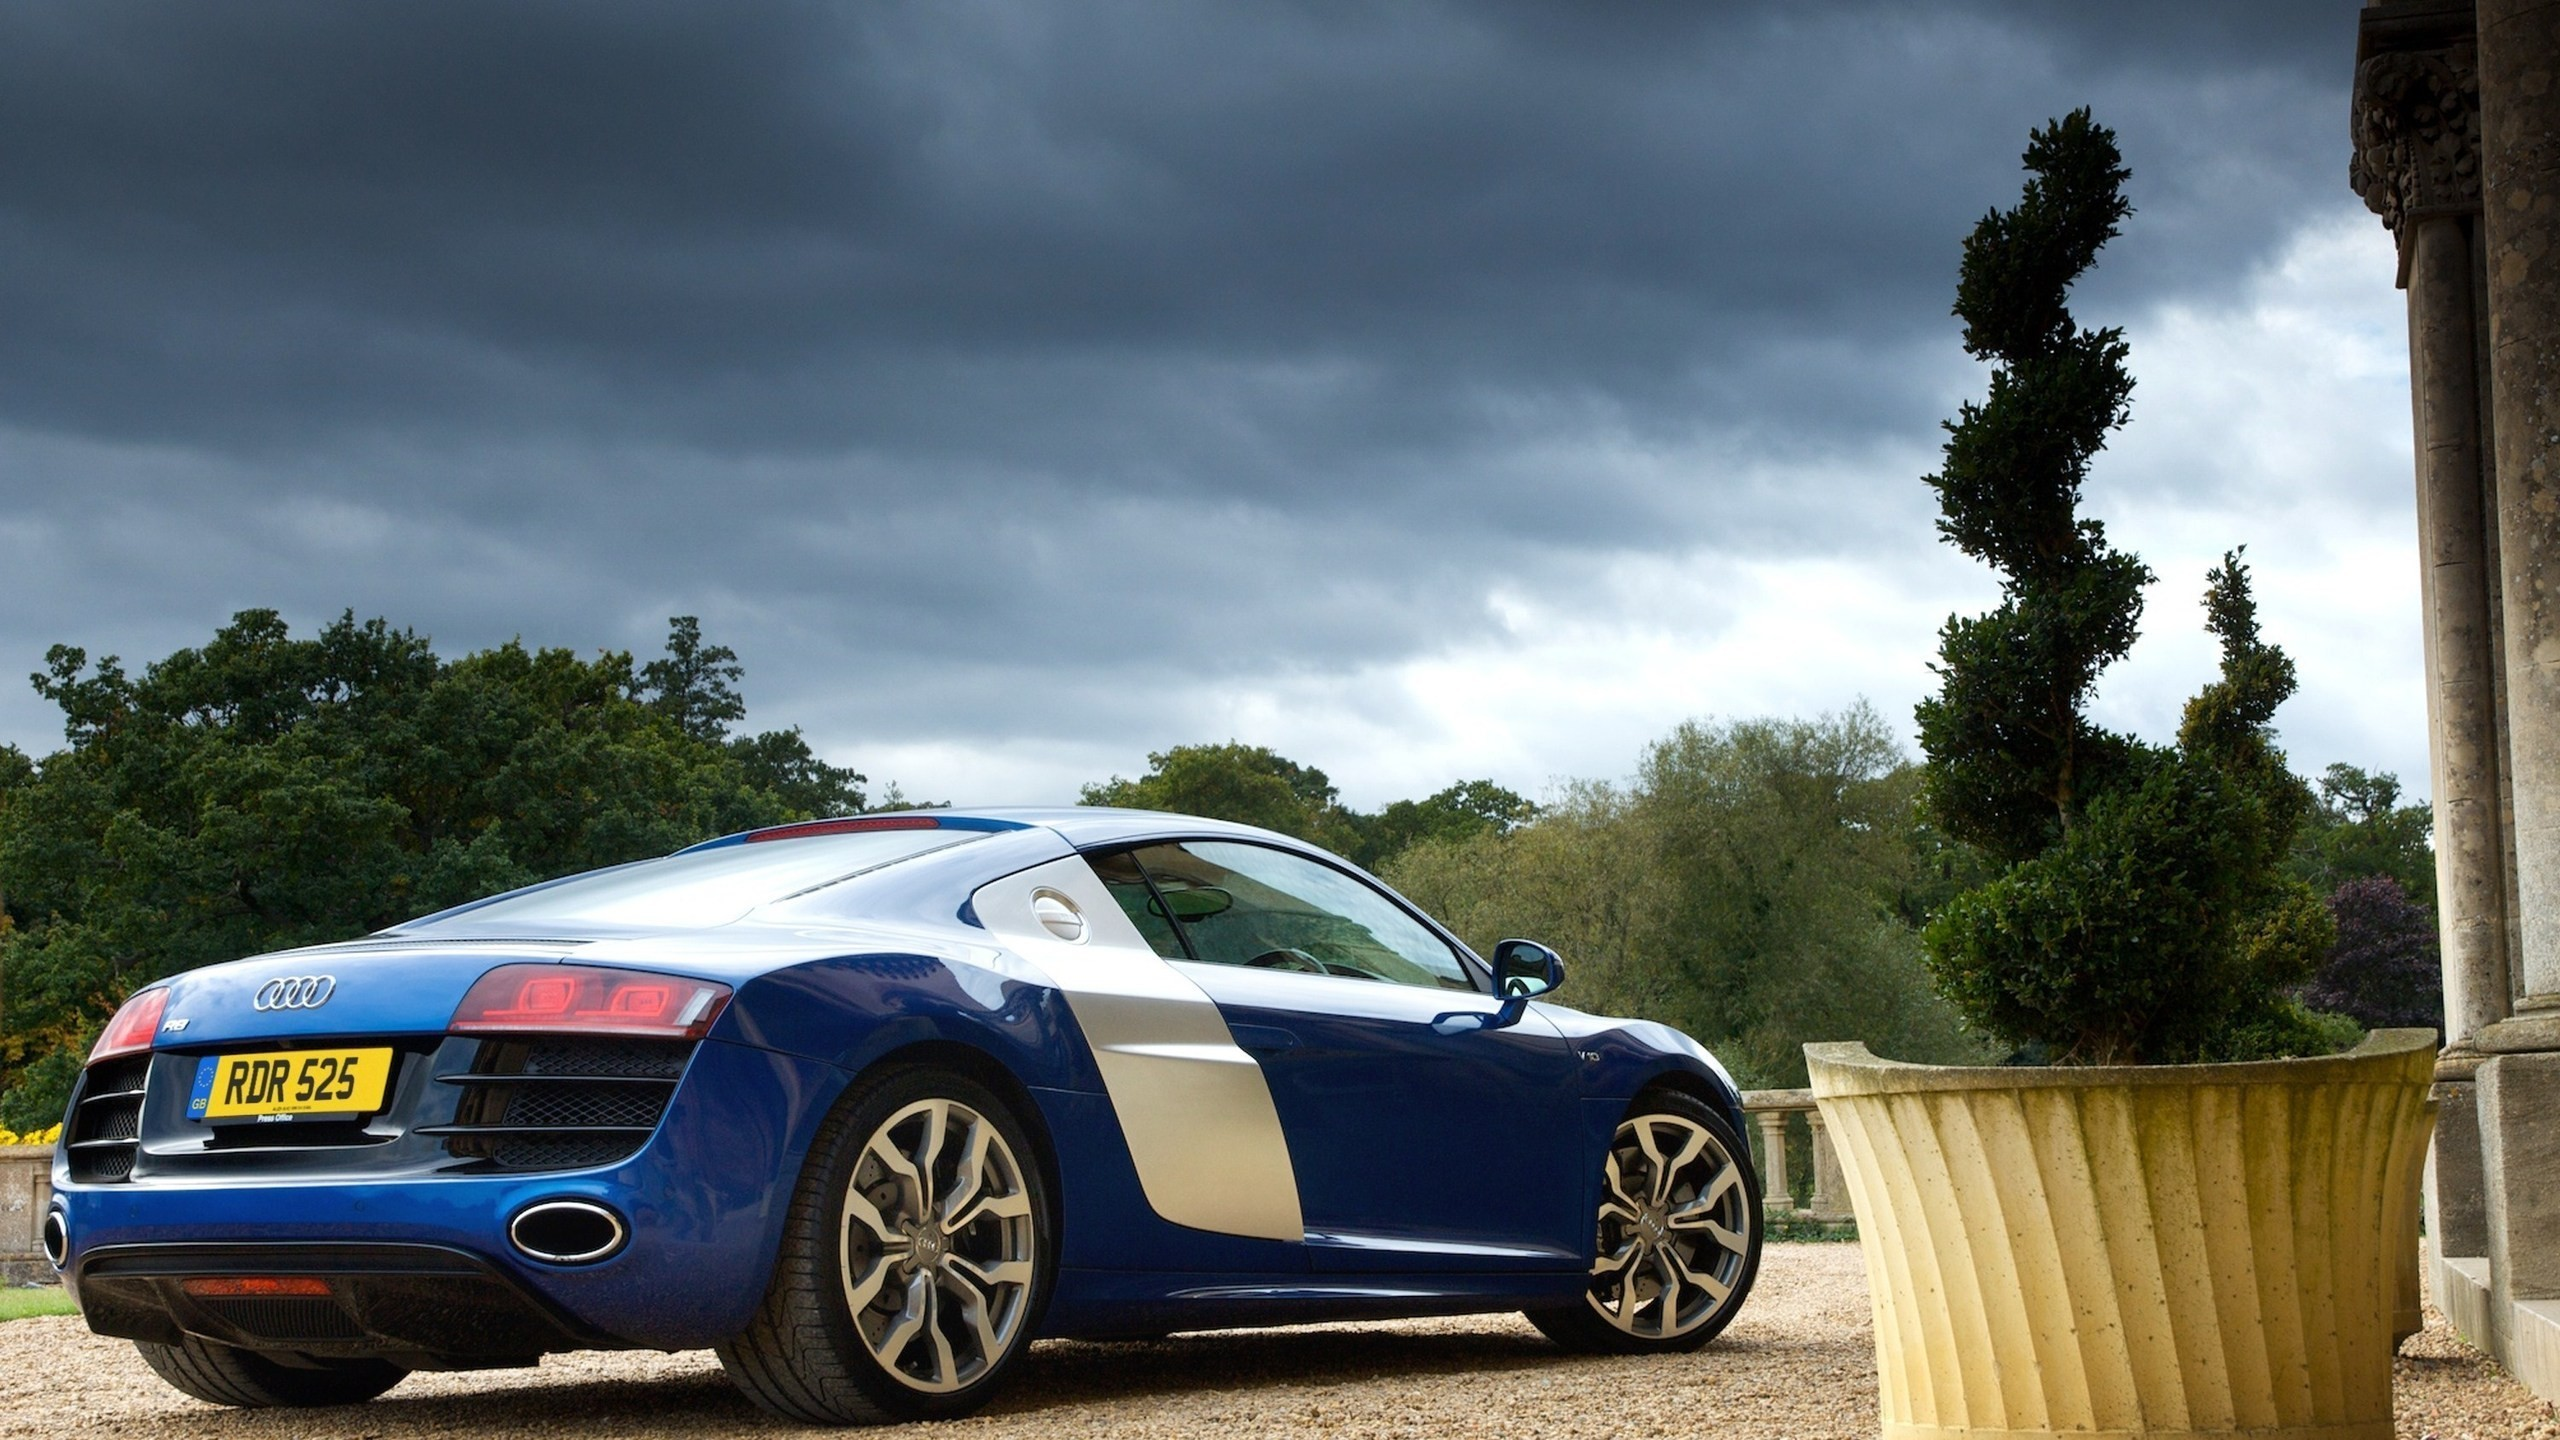 cars audi r8 vehicles HD Wallpaper